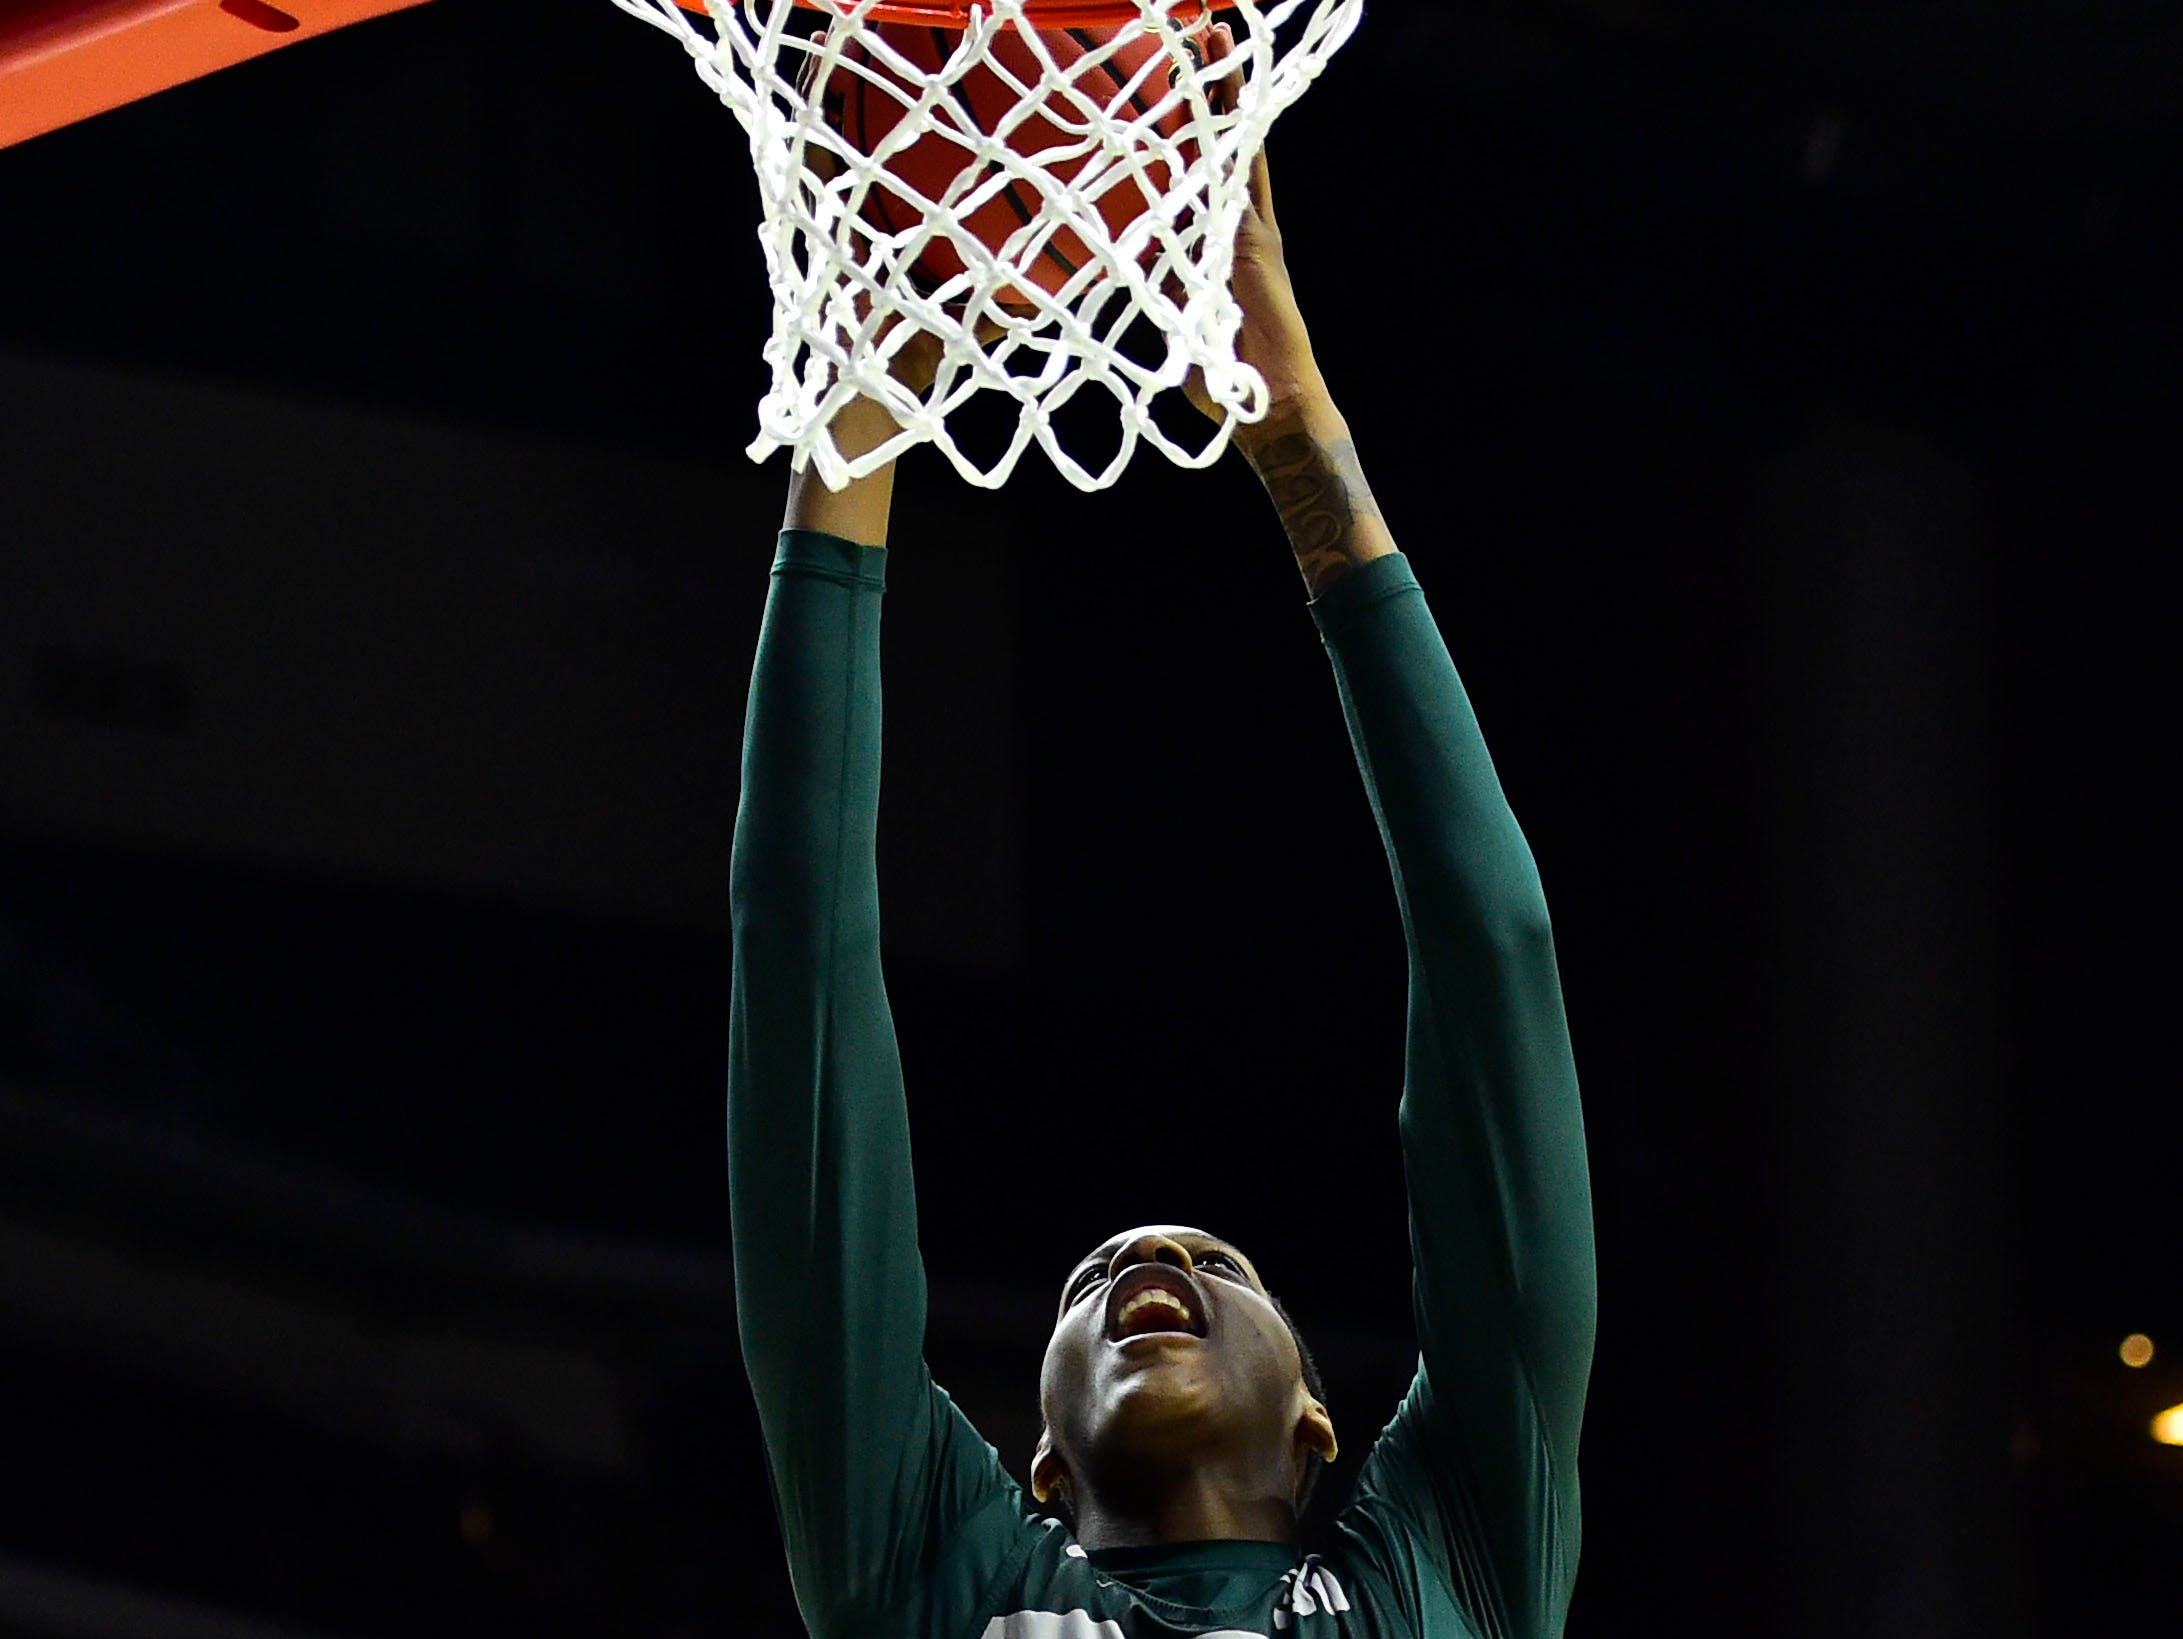 Mar 20, 2019; Des Moines, IA, USA; Michigan State Spartans forward Marcus Bingham Jr. (30) shoots the ball during practice before the first round of the 2019 NCAA Tournament at Wells Fargo Arena. Mandatory Credit: Jeffery Becker-USA TODAY Sports